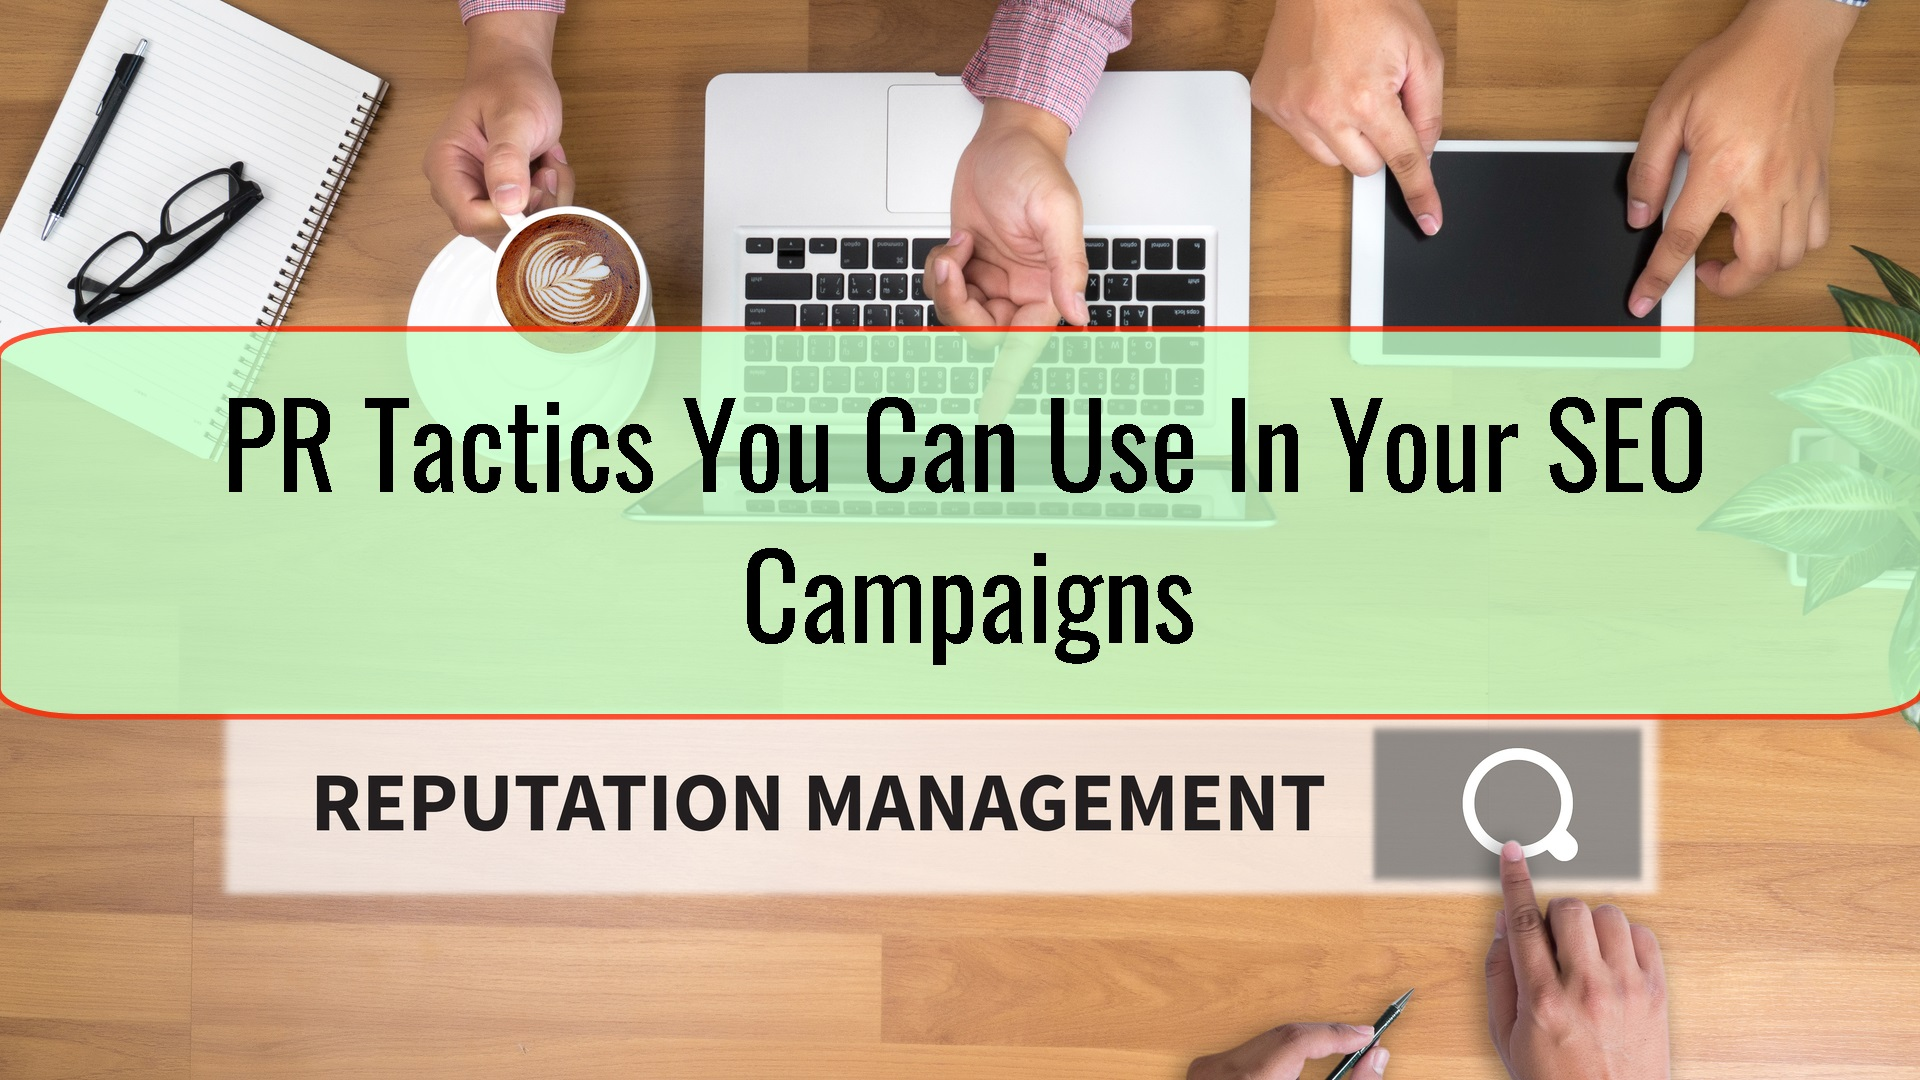 PR Tactics You Can Use In Your SEO Campaigns